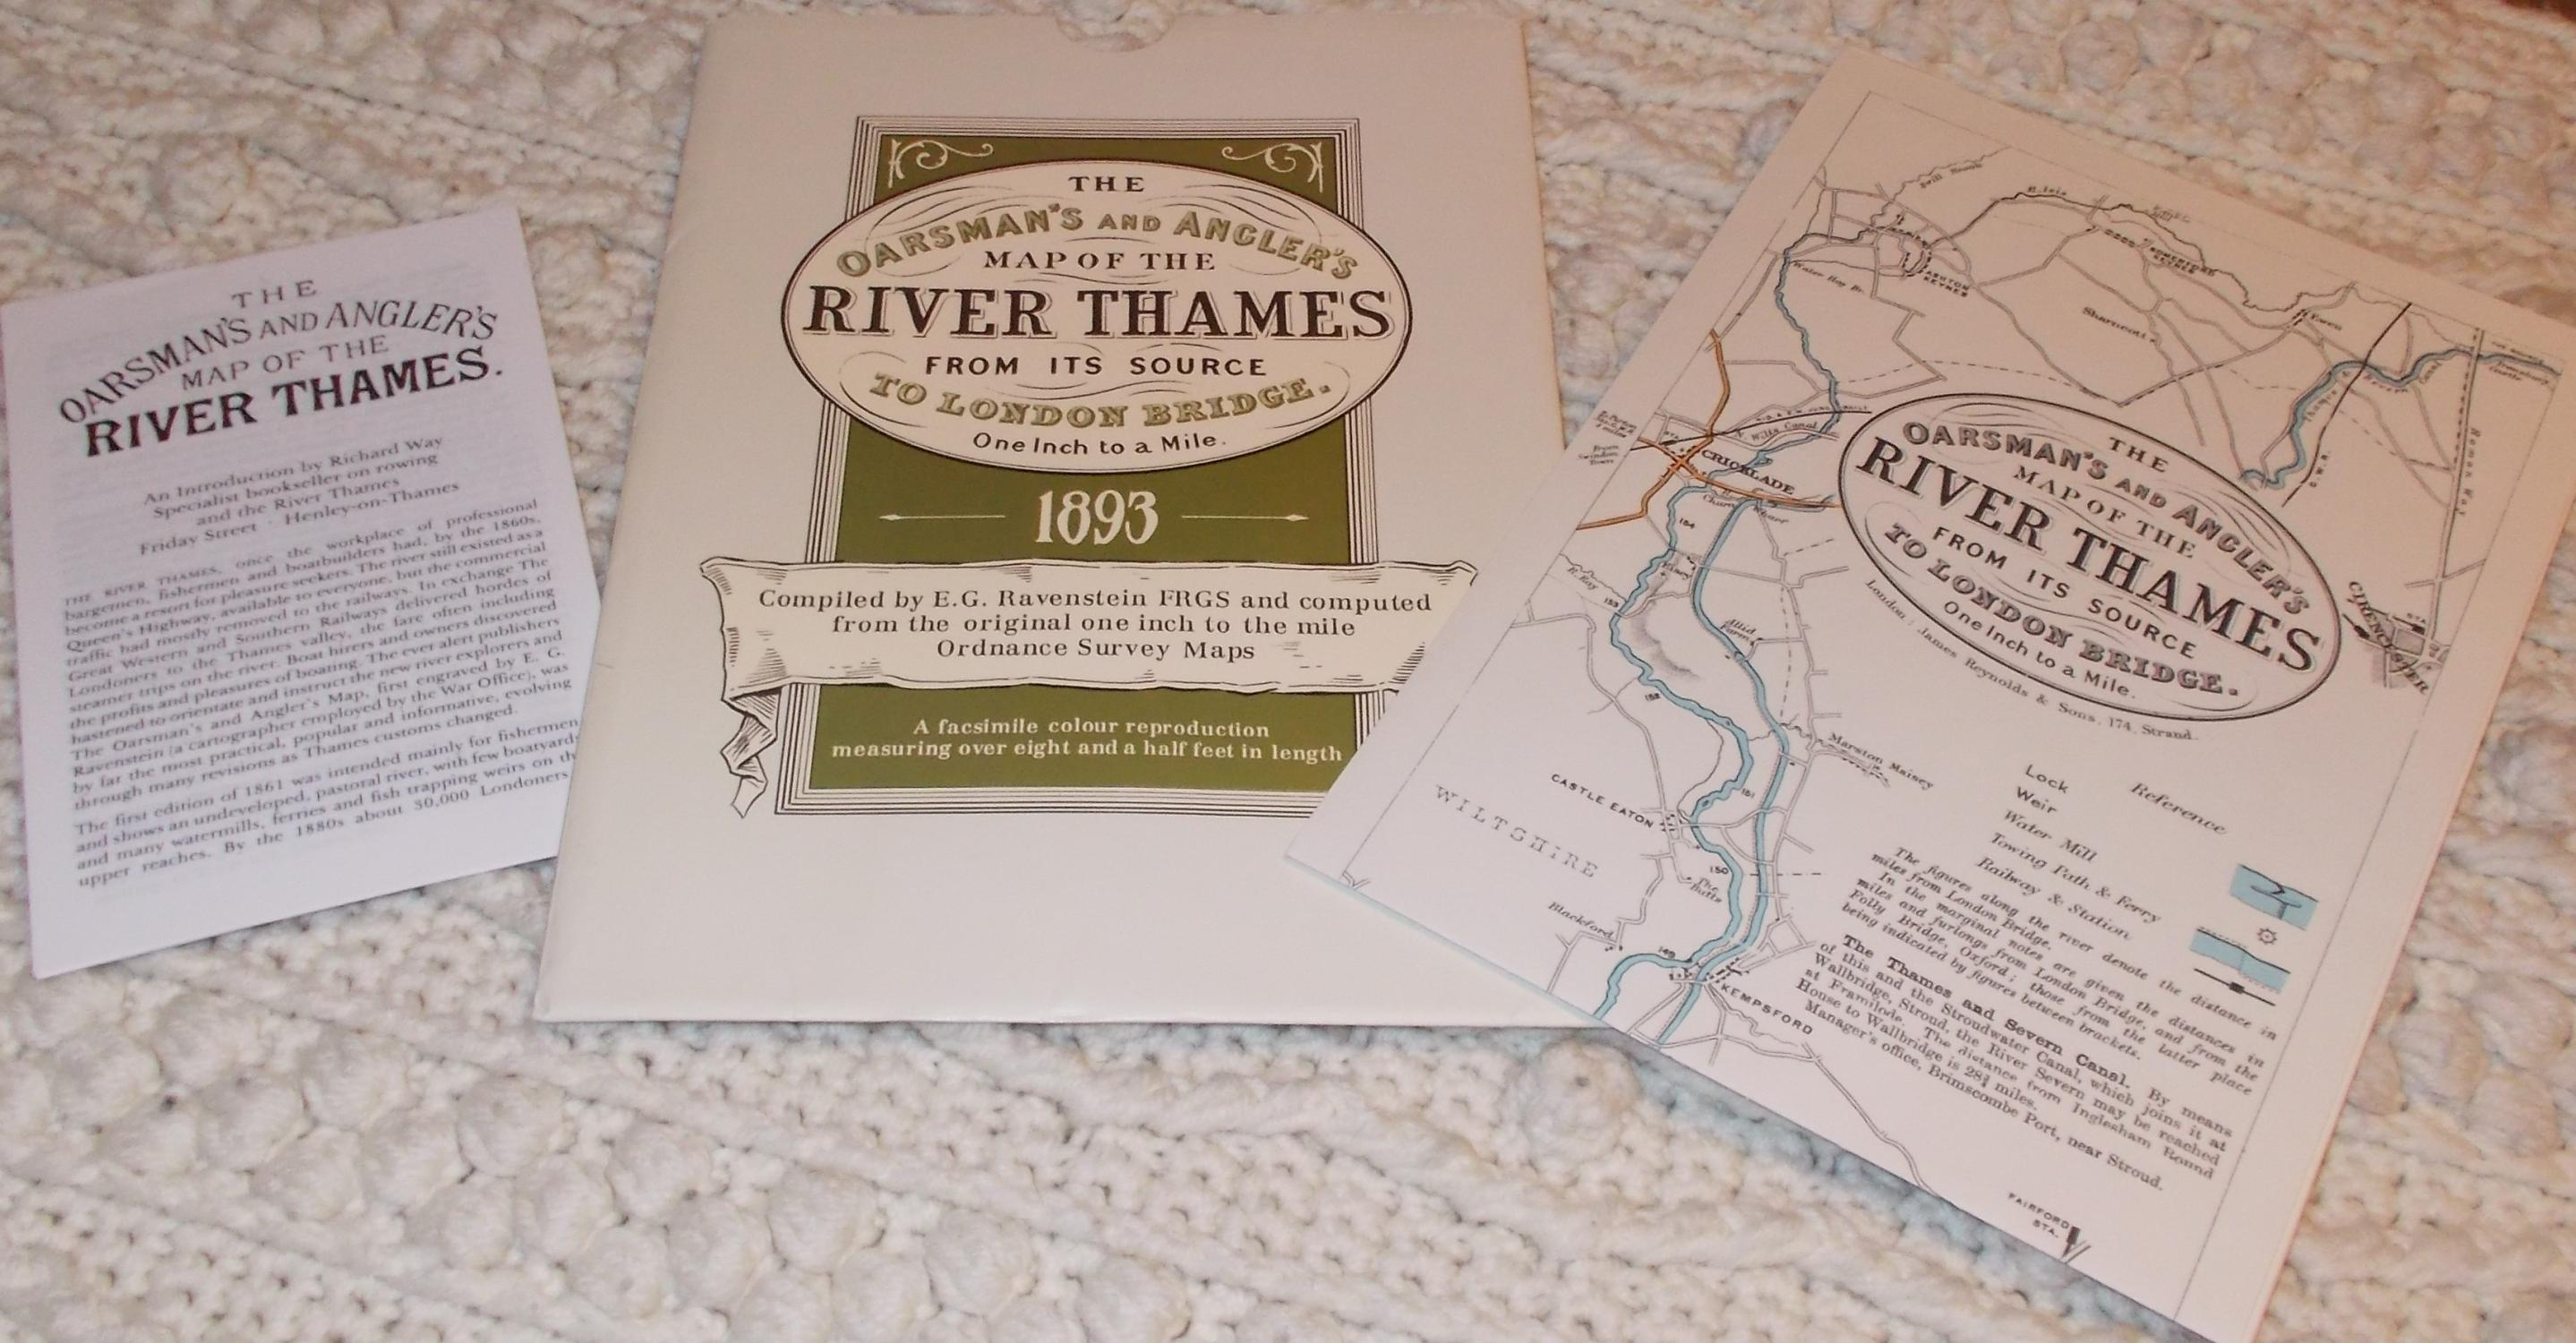 Map Of London Bridges Over The Thames.The Oarsman S And Angler S Map Of The River Thames 1893 From Its